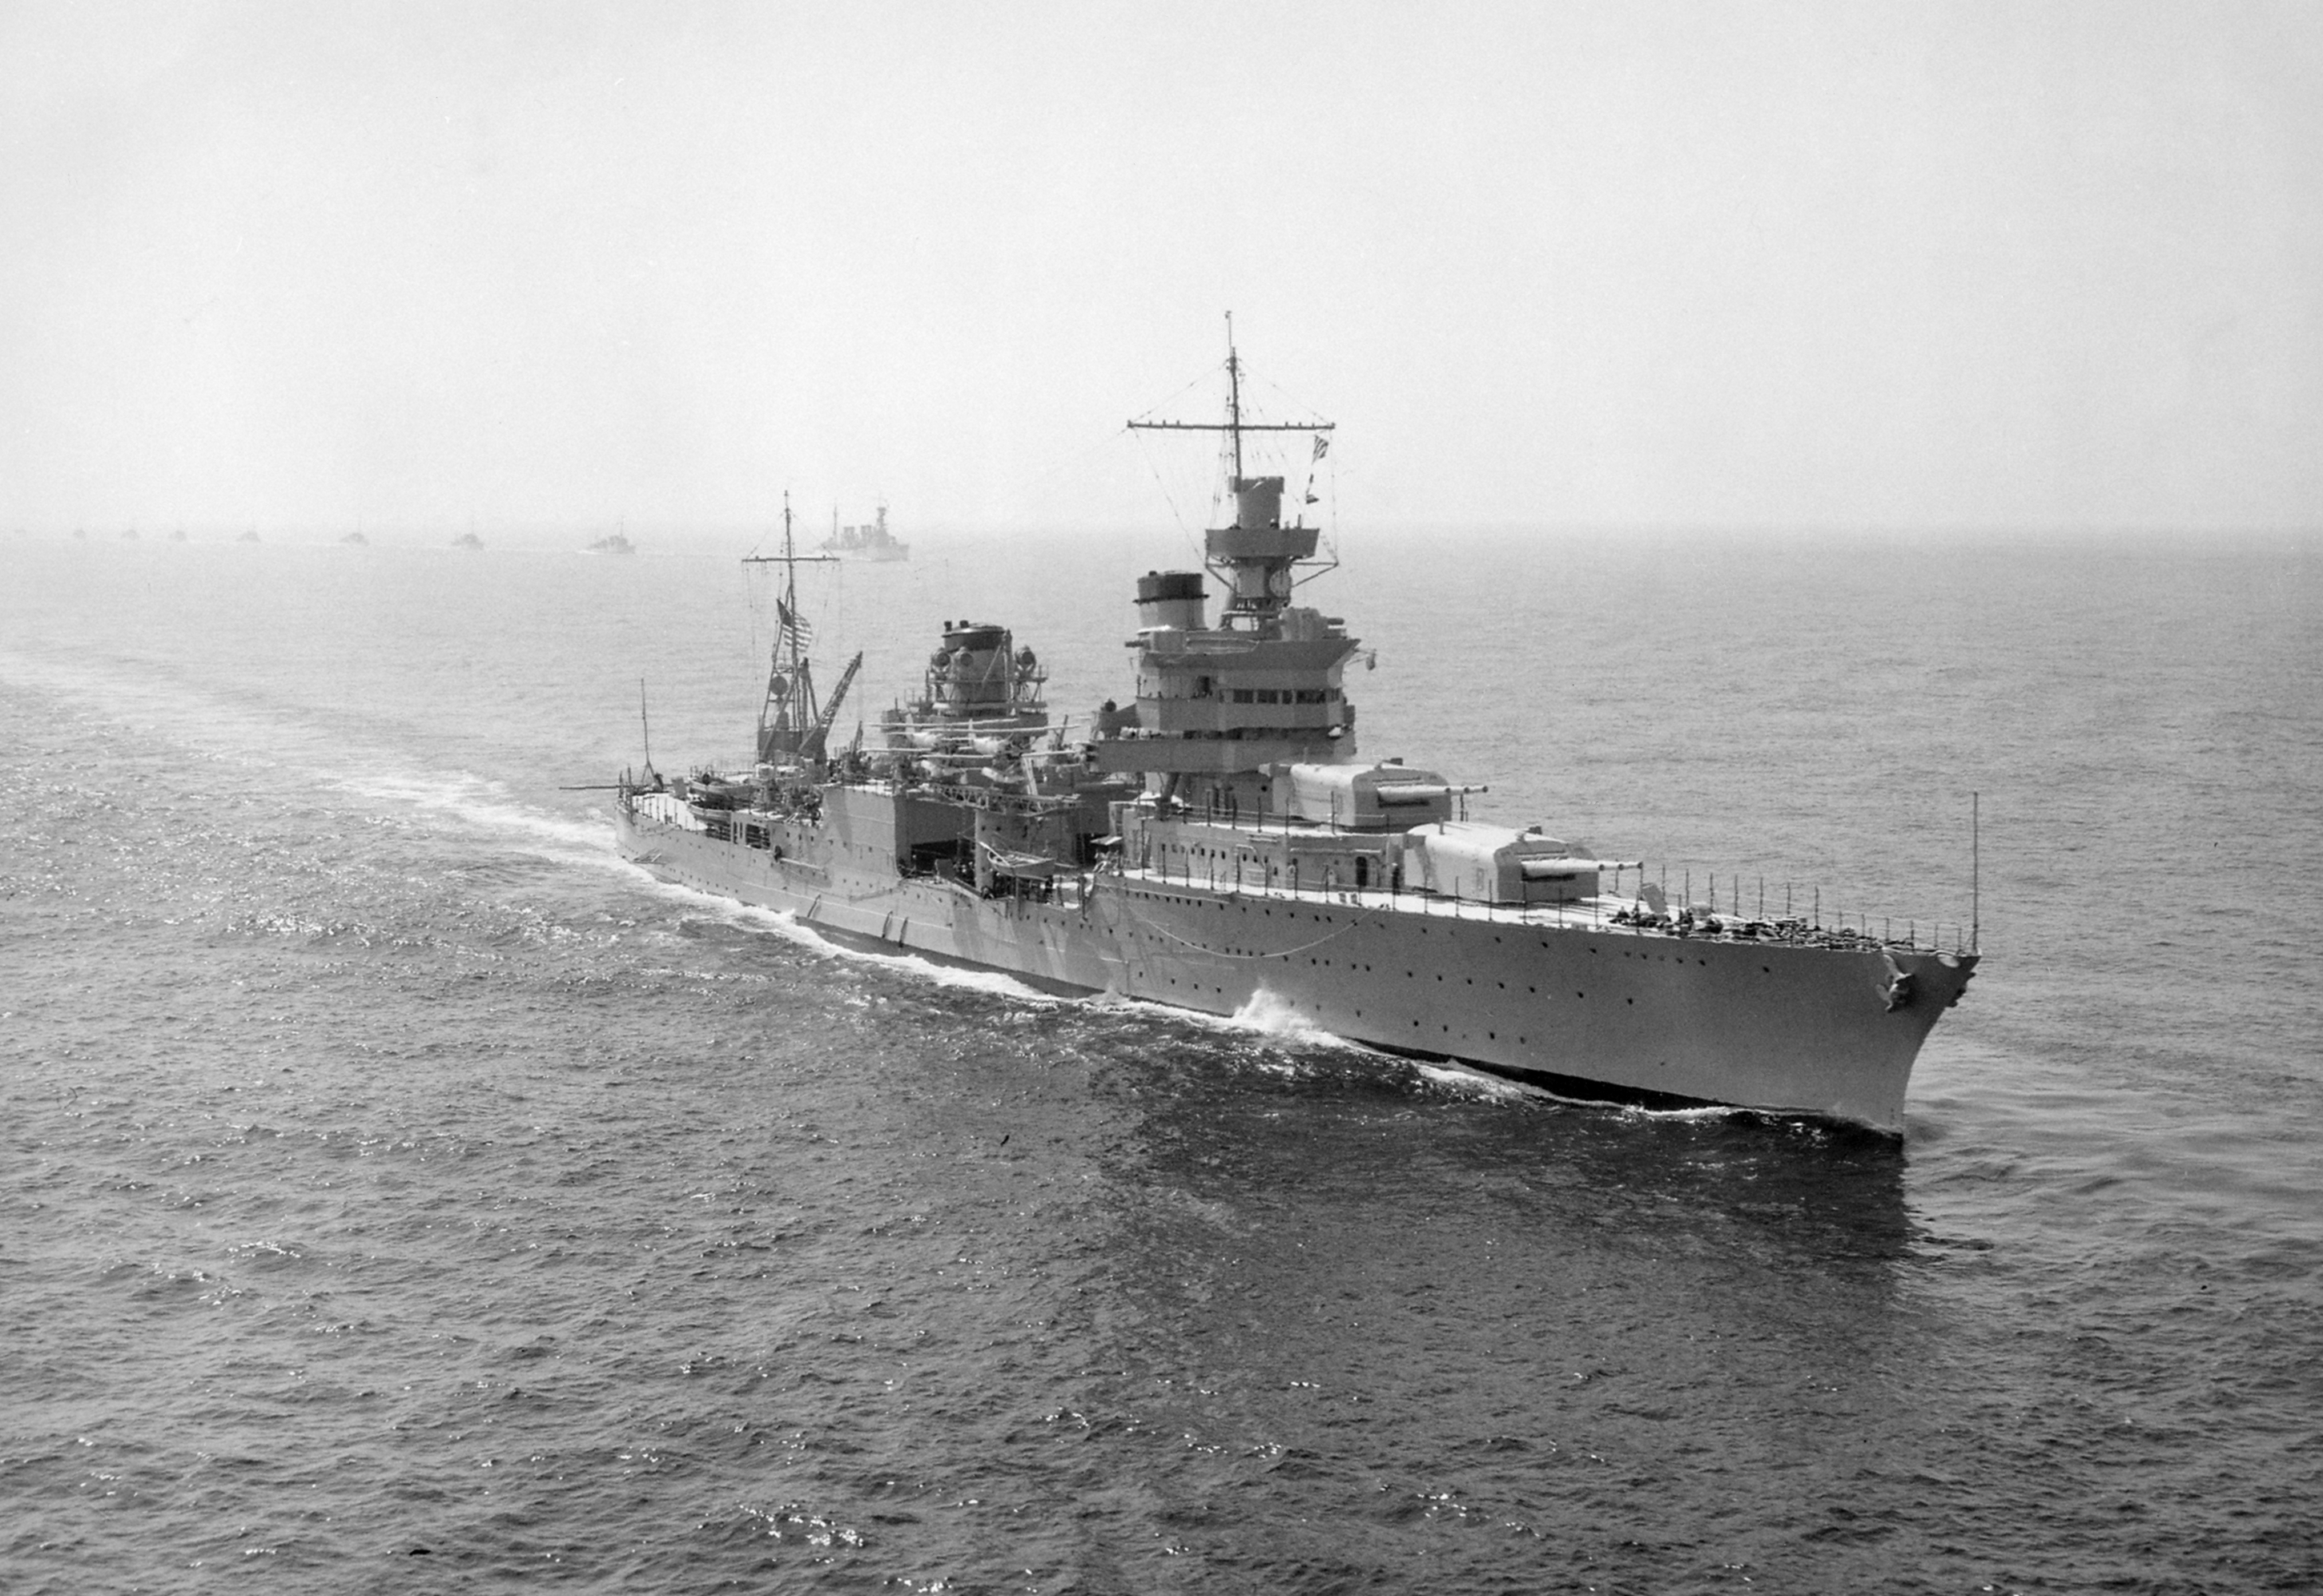 http://upload.wikimedia.org/wikipedia/commons/7/79/USS_Indianapolis_(CA-35)_underway_in_1939.jpg